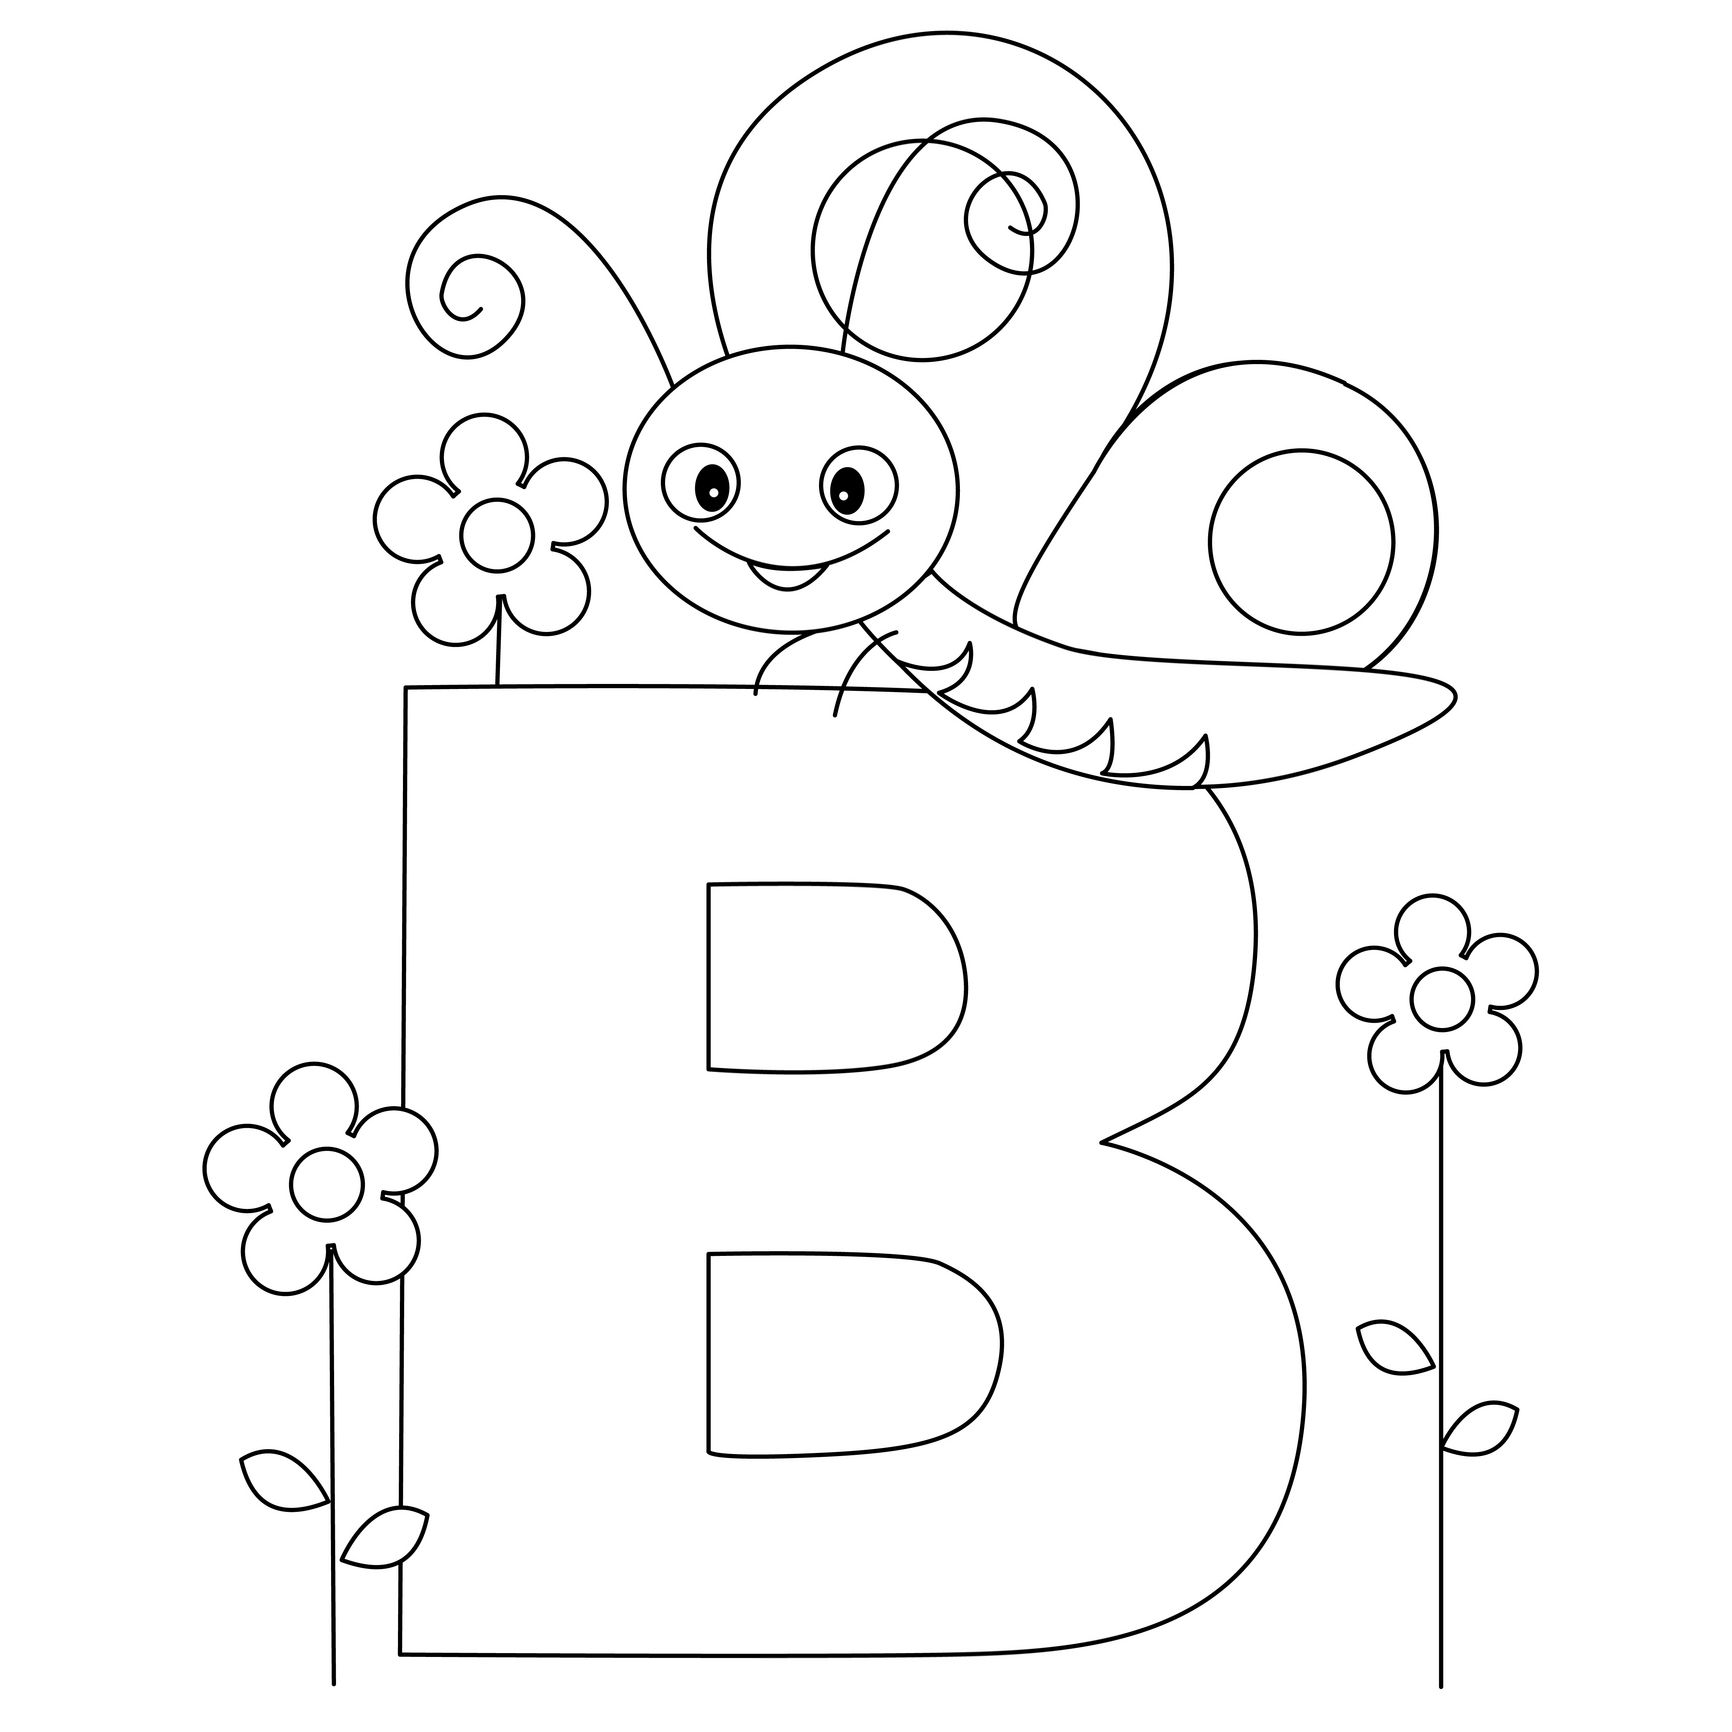 Animal Alphabet Letter B1 Jpeg 1732 1732 Letter B Coloring Pages Bug Coloring Pages Butterfly Coloring Page